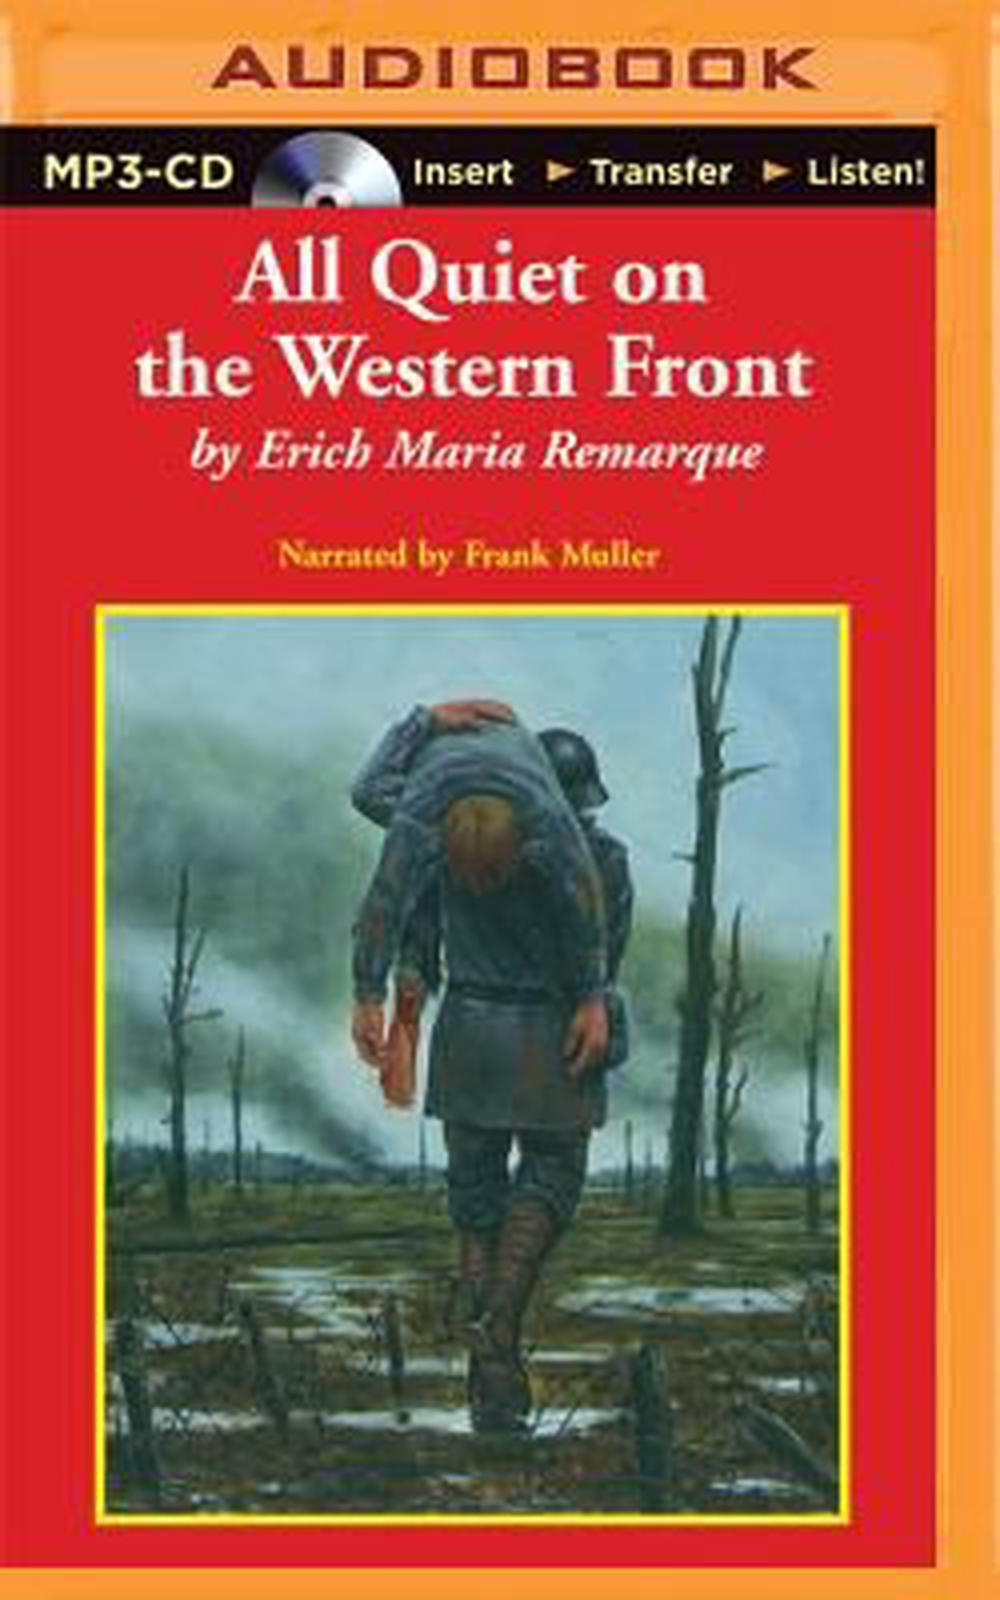 an analysis of all quiet on the western fron by erich maria remarque The nature of warfare as depicted in erich maria remarque's all quiet on the western front was a brutish and inhumane experience for soldiers on all sides of the front.